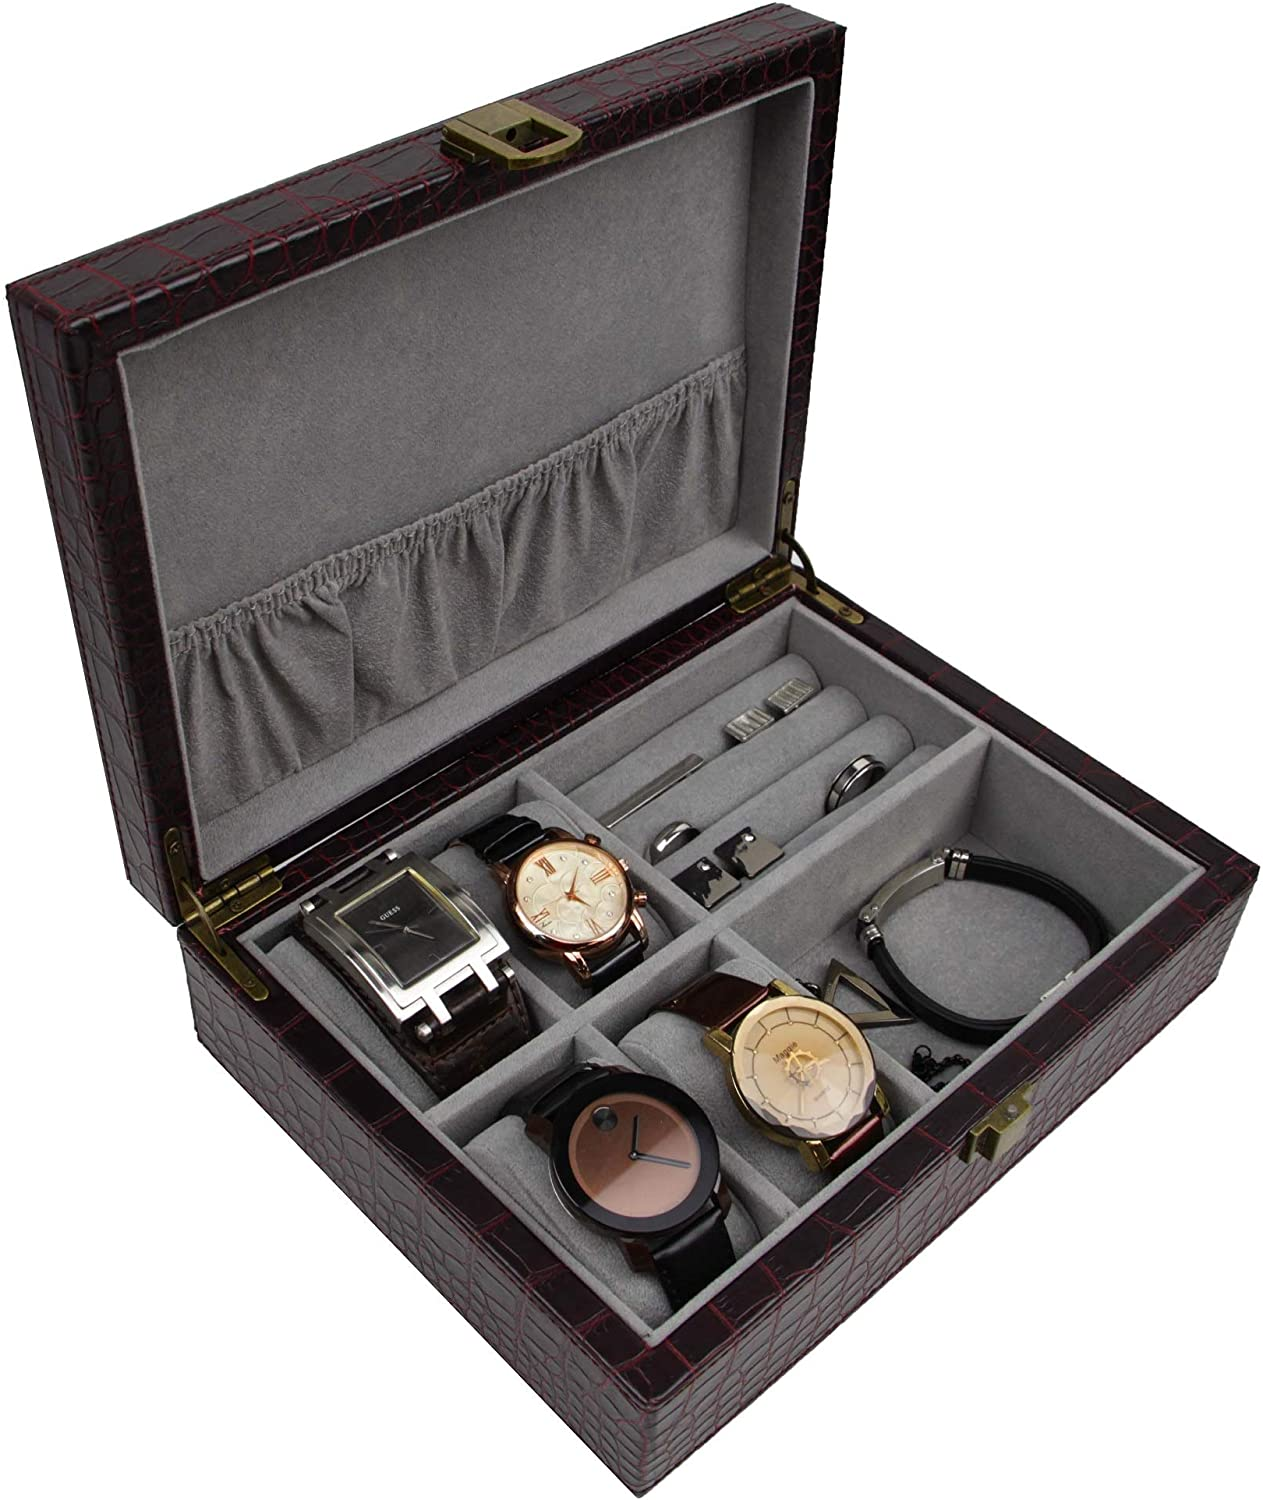 gifts-for-dad-from-daughter-leather-watch-box